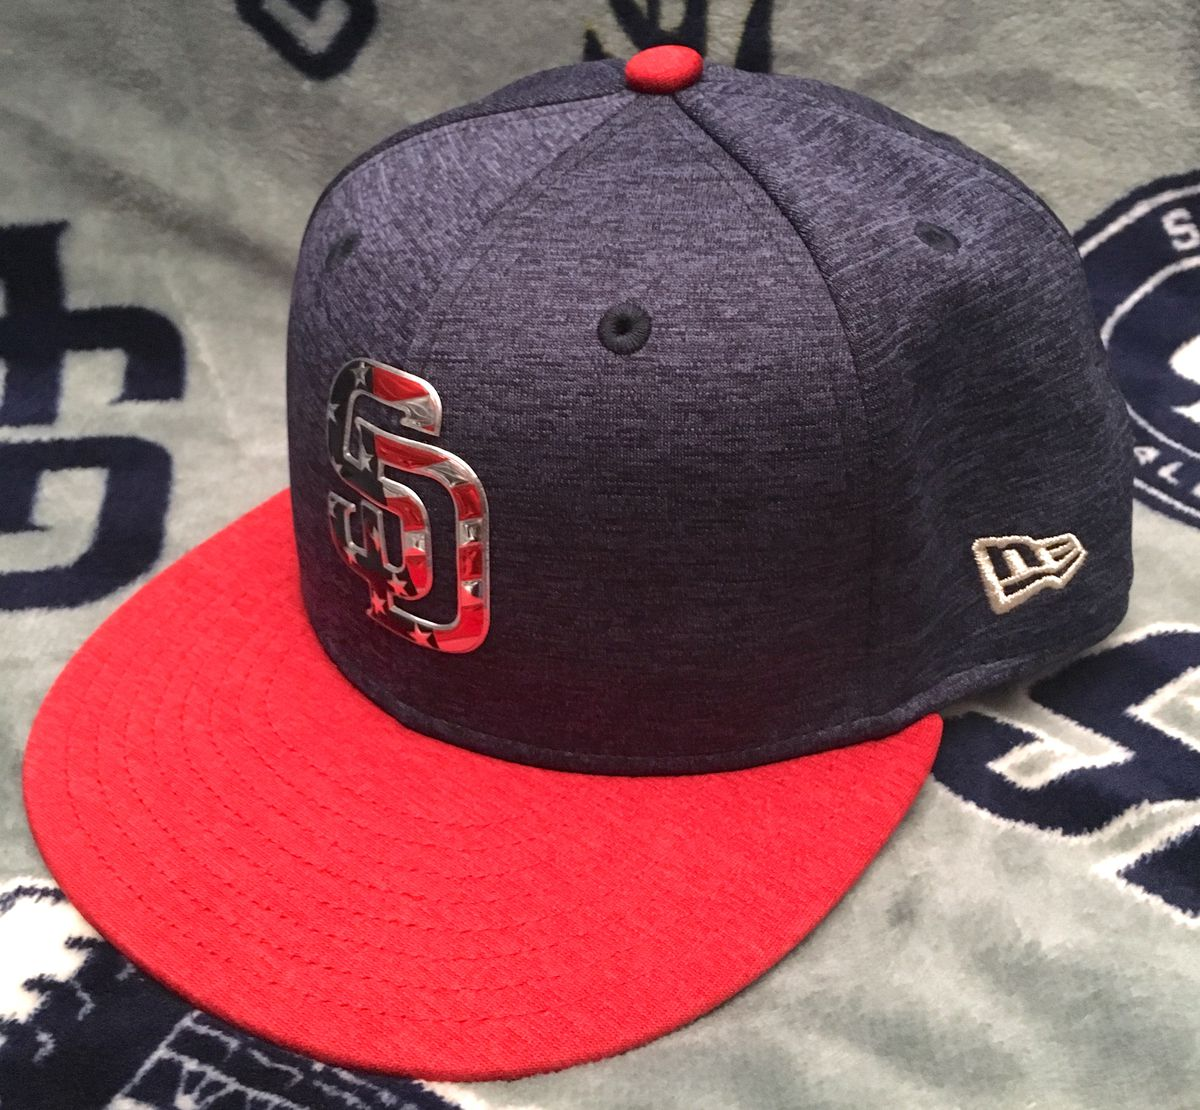 53d8c23567ccbb This year's model is no different from years prior as far as changes; each  cap has seen wholesale changes in design since 2012. The biggest change in  2017 ...